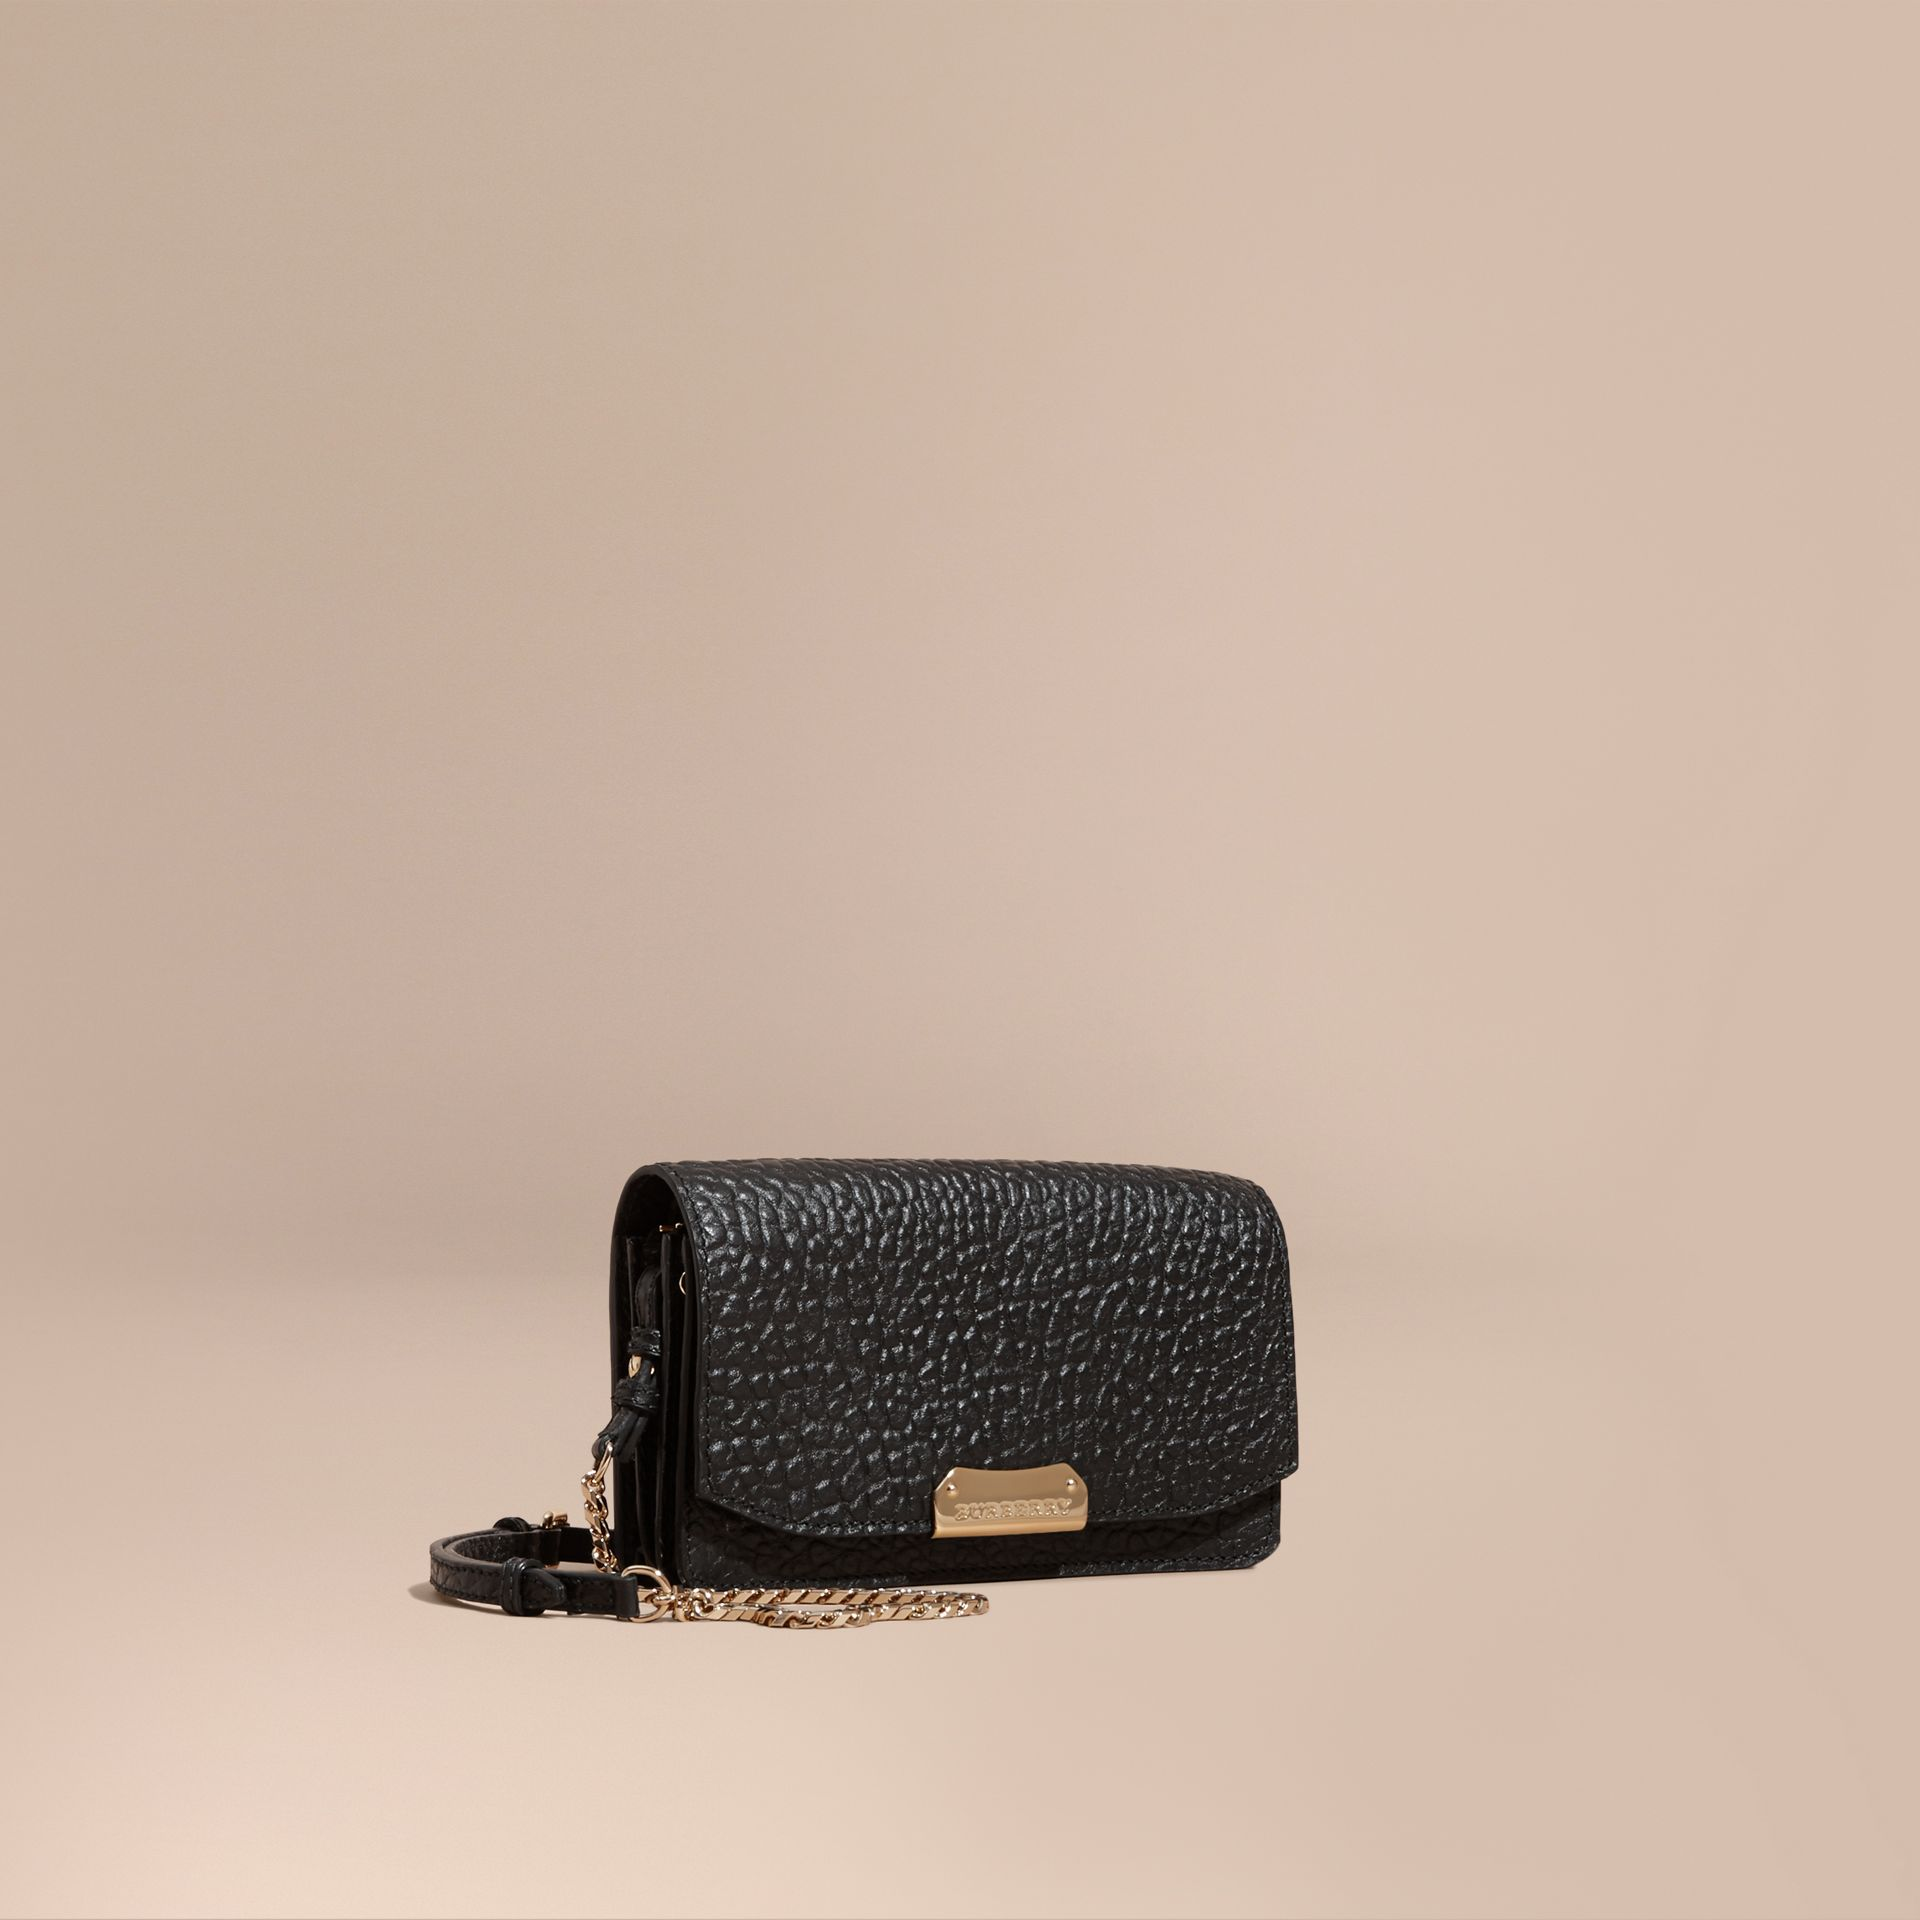 Black Small Signature Grain Leather Clutch Bag with Chain - gallery image 1